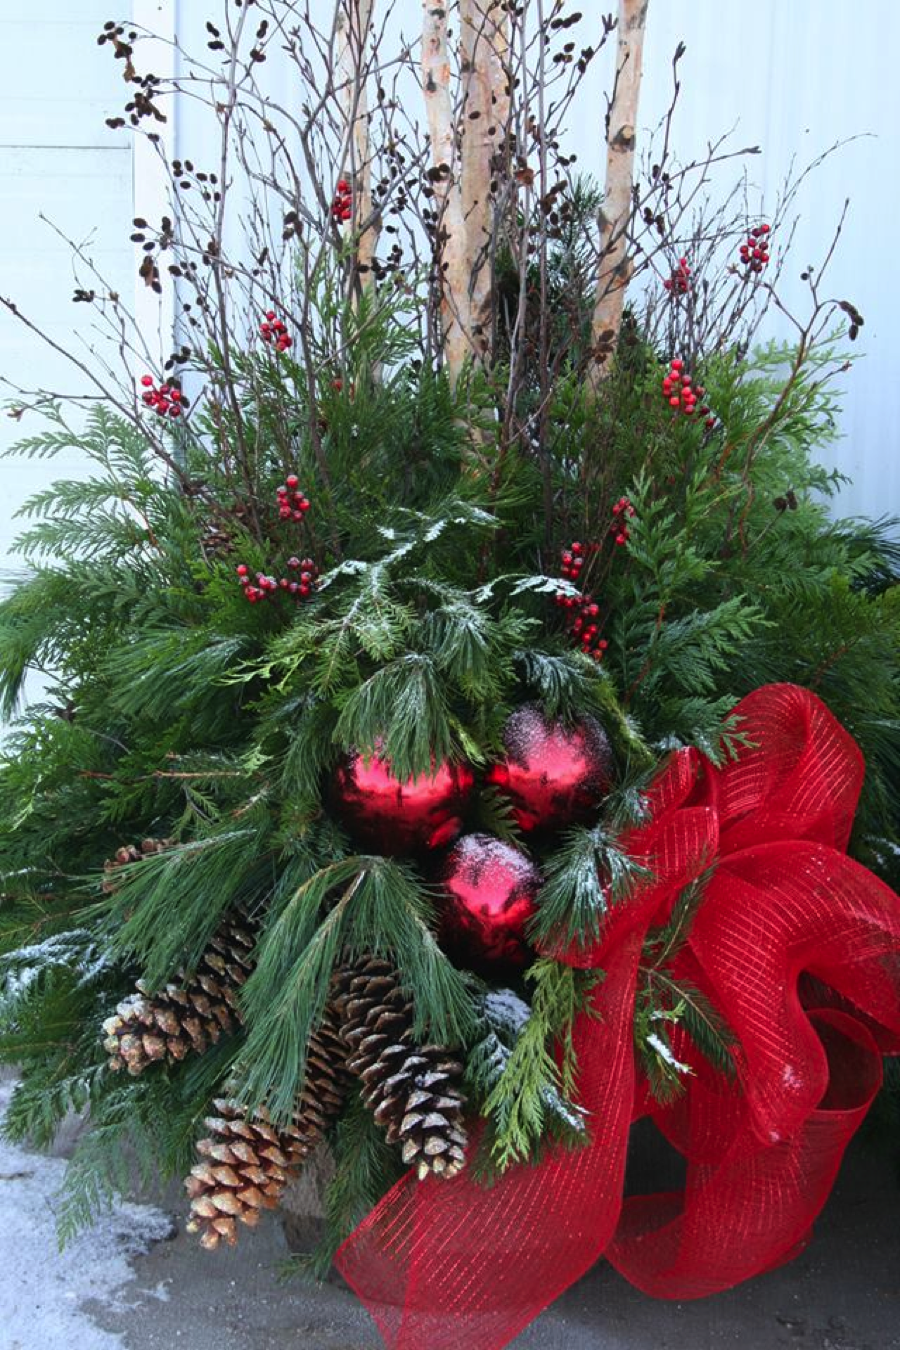 Christmas Urn Decorations For Outdoors Christmas Urns  Christmas Outdoor Decorating  Pinterest